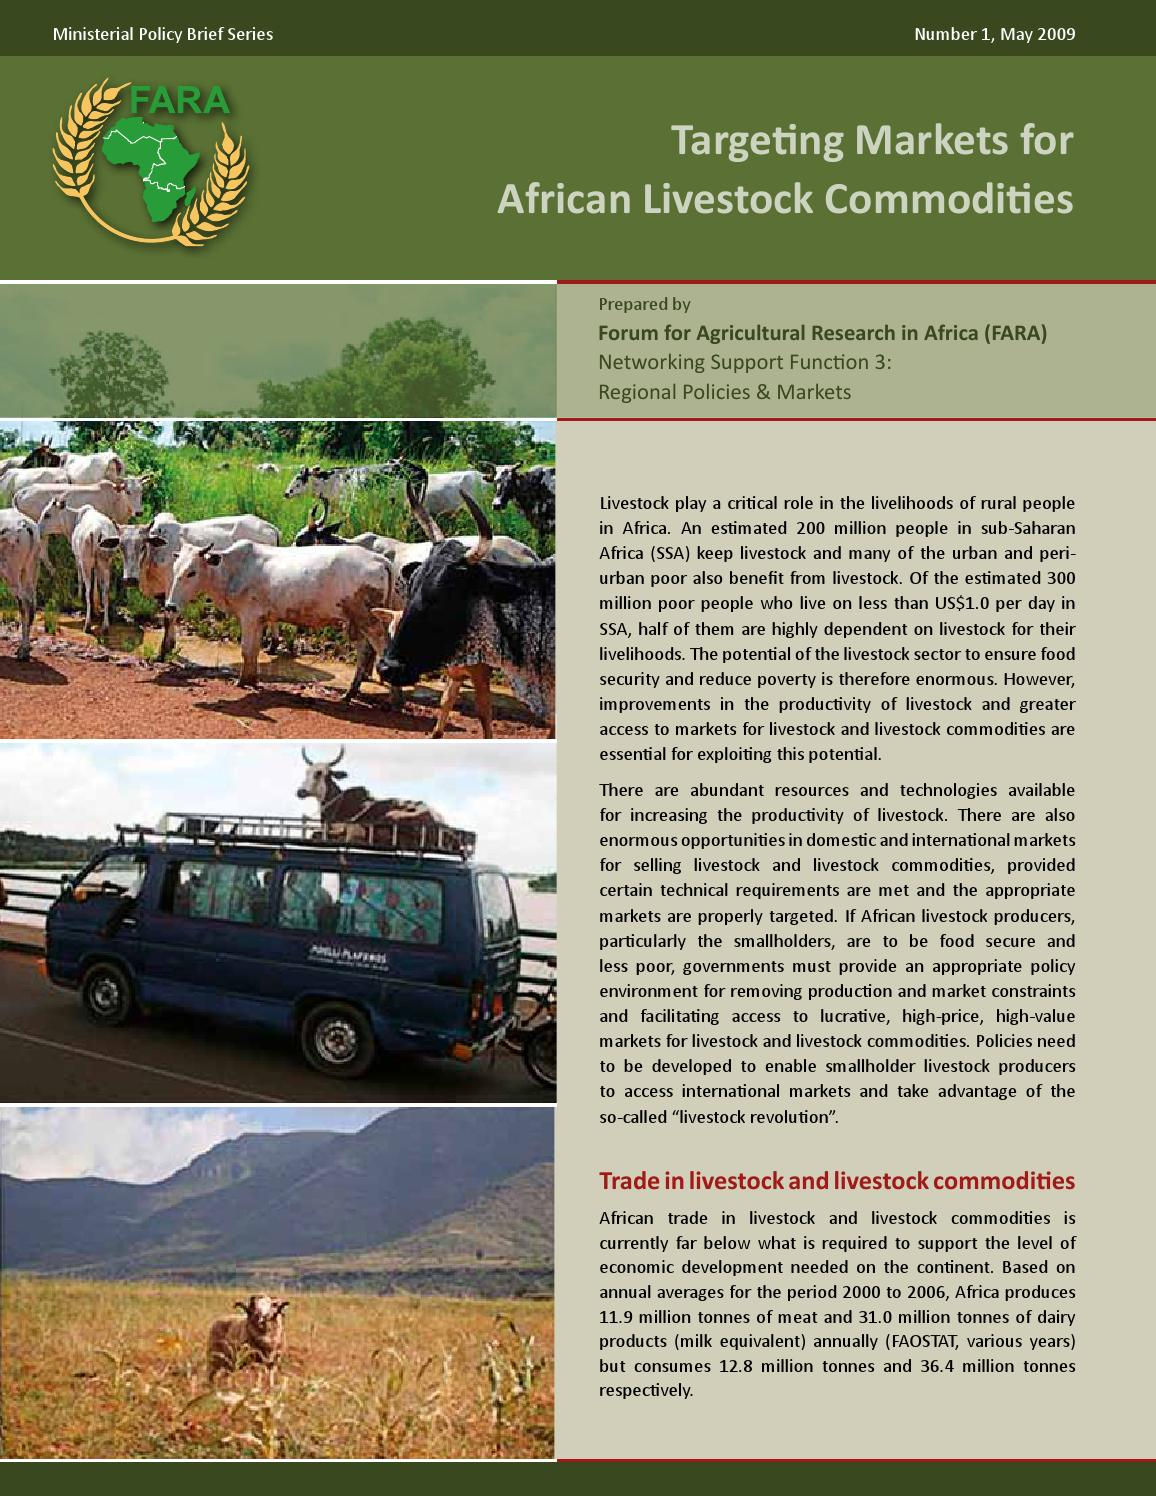 Targeting markets for african livestock commodities: Policy